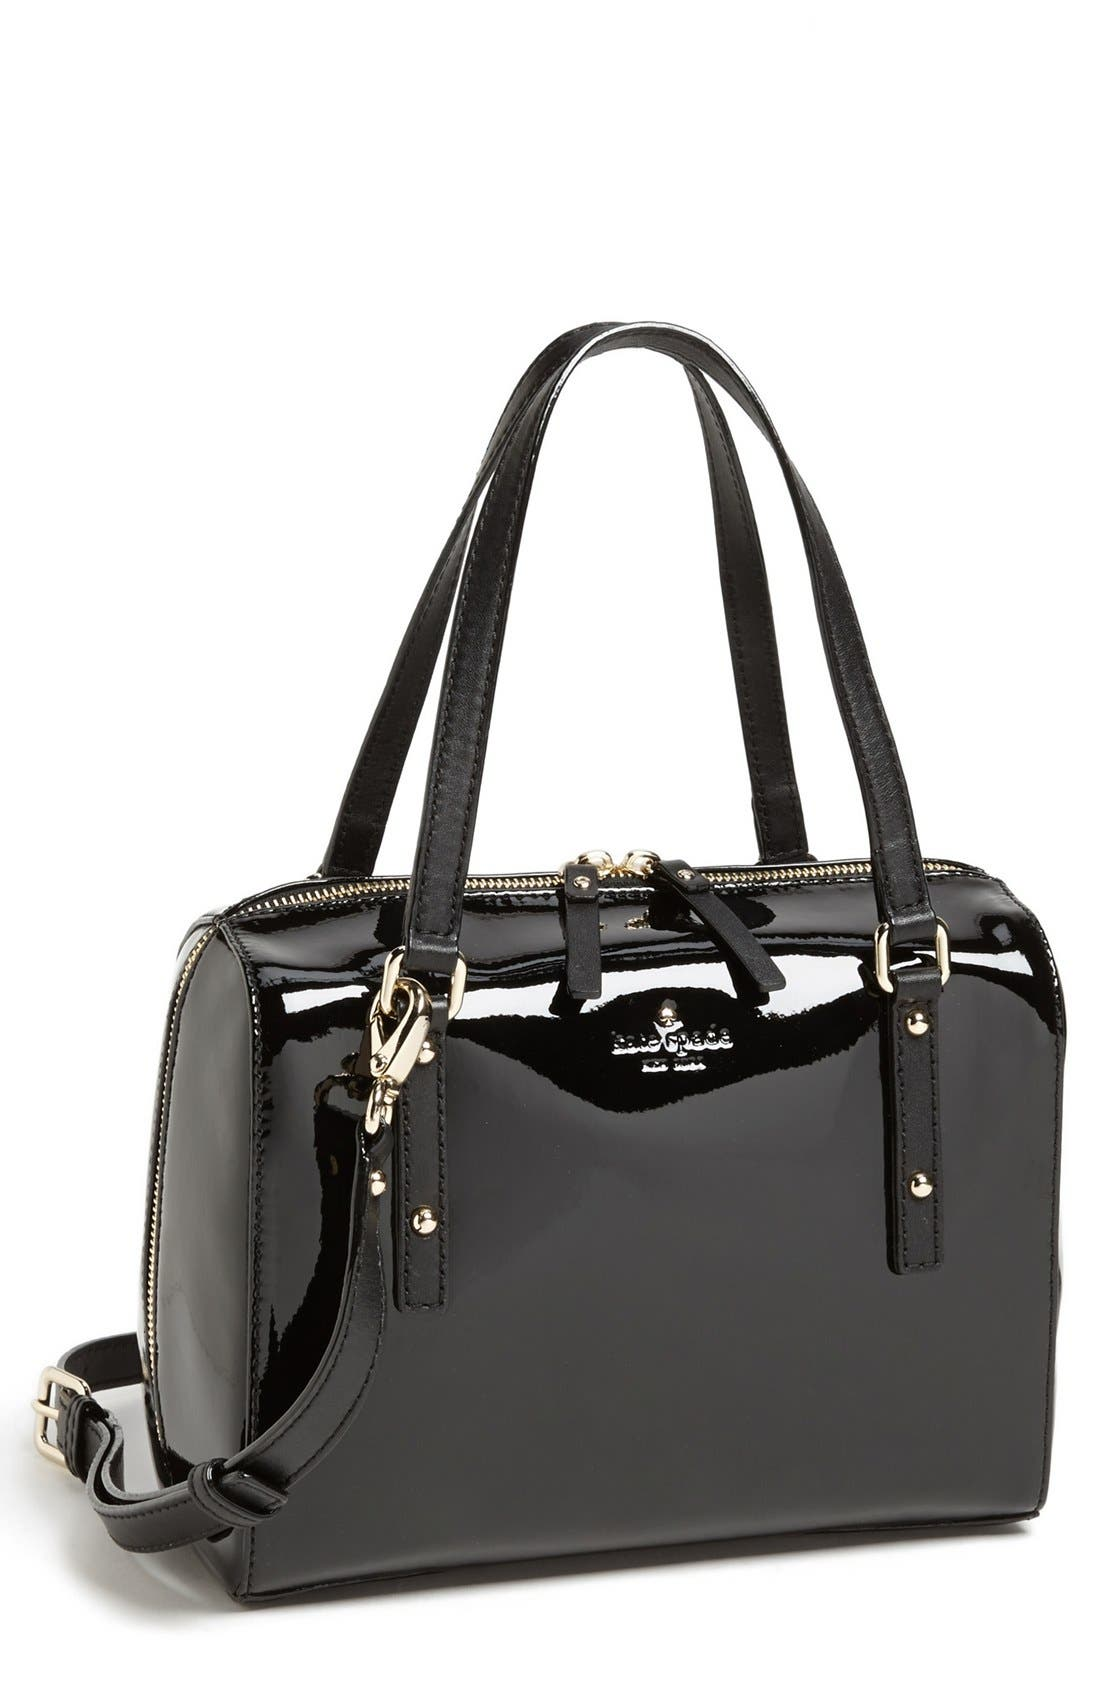 Alternate Image 1 Selected - kate spade new york 'jackson square - small damien' crossbody bag